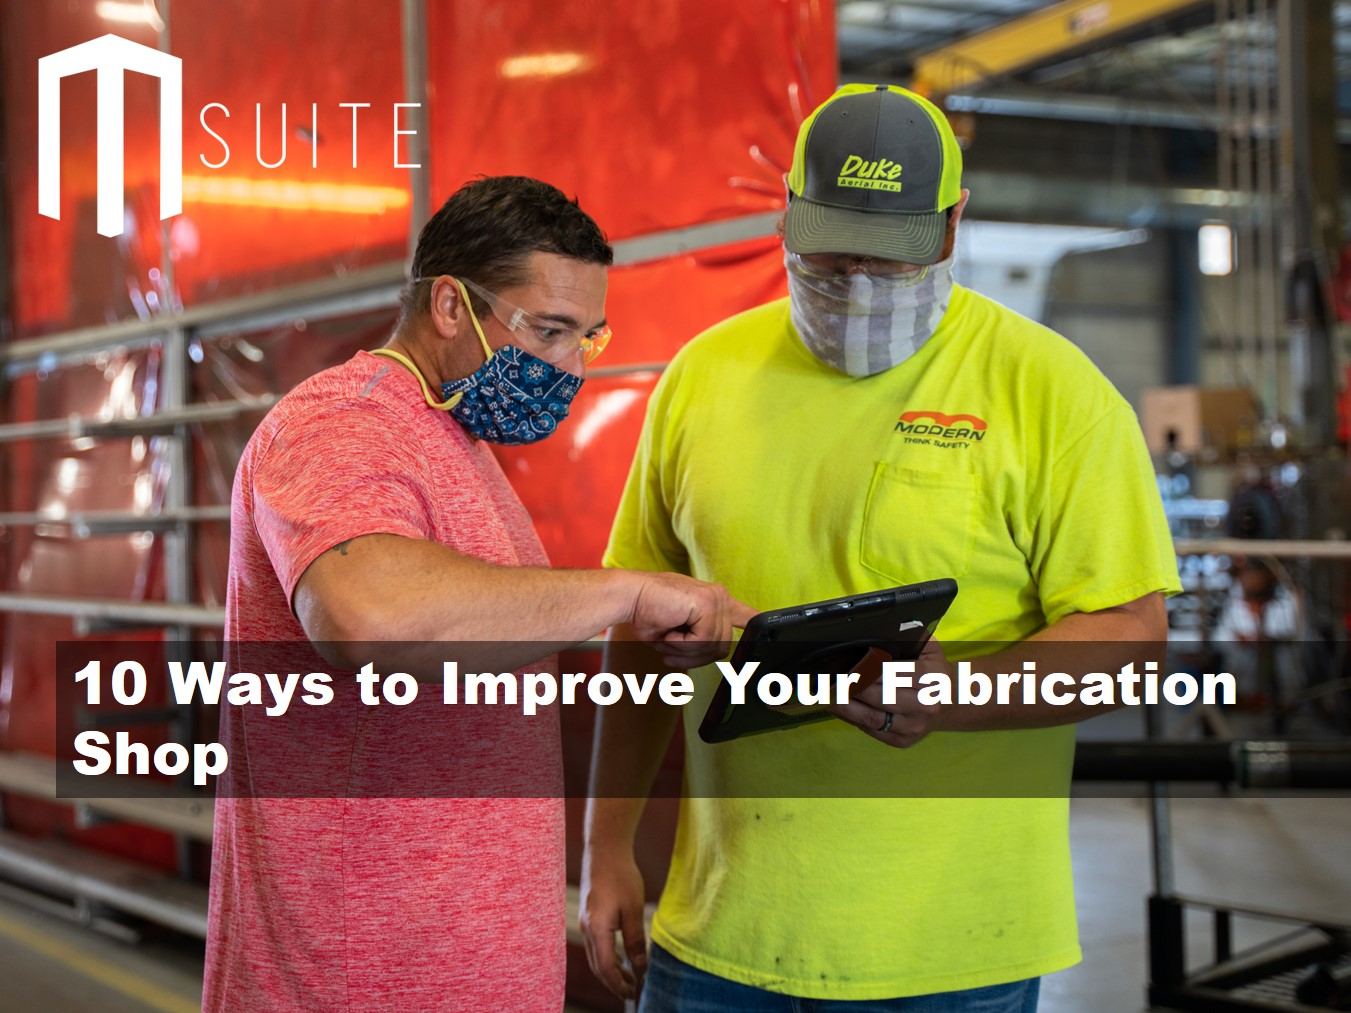 10 Ways to Improve Your Fabrication Shop